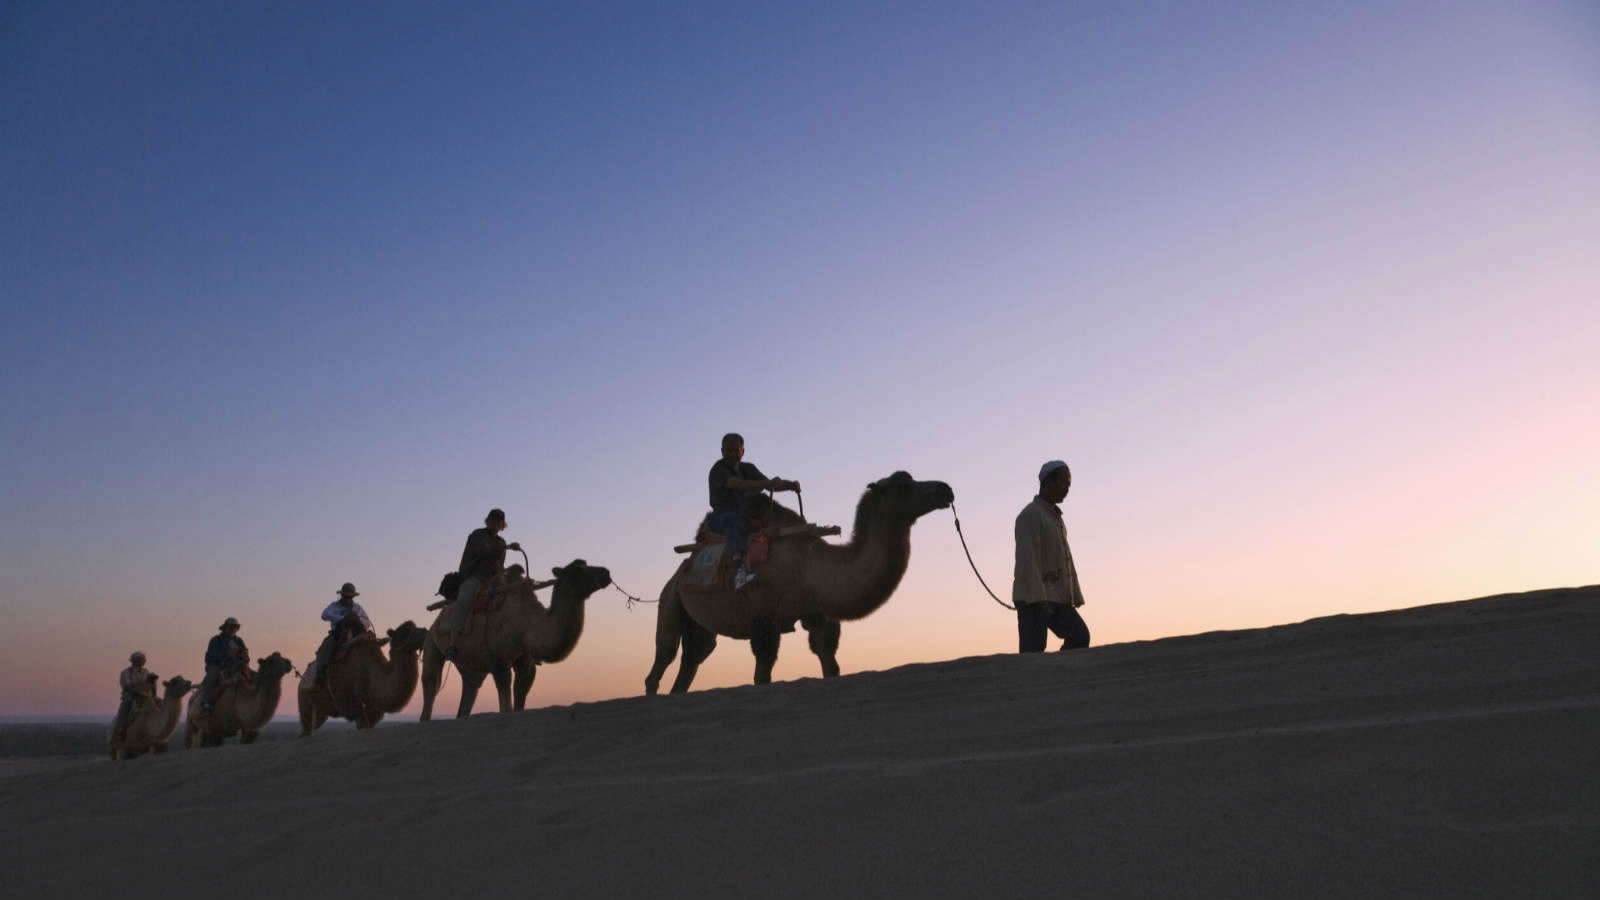 Does China 'Belt and Road' initiative benefit Africa?